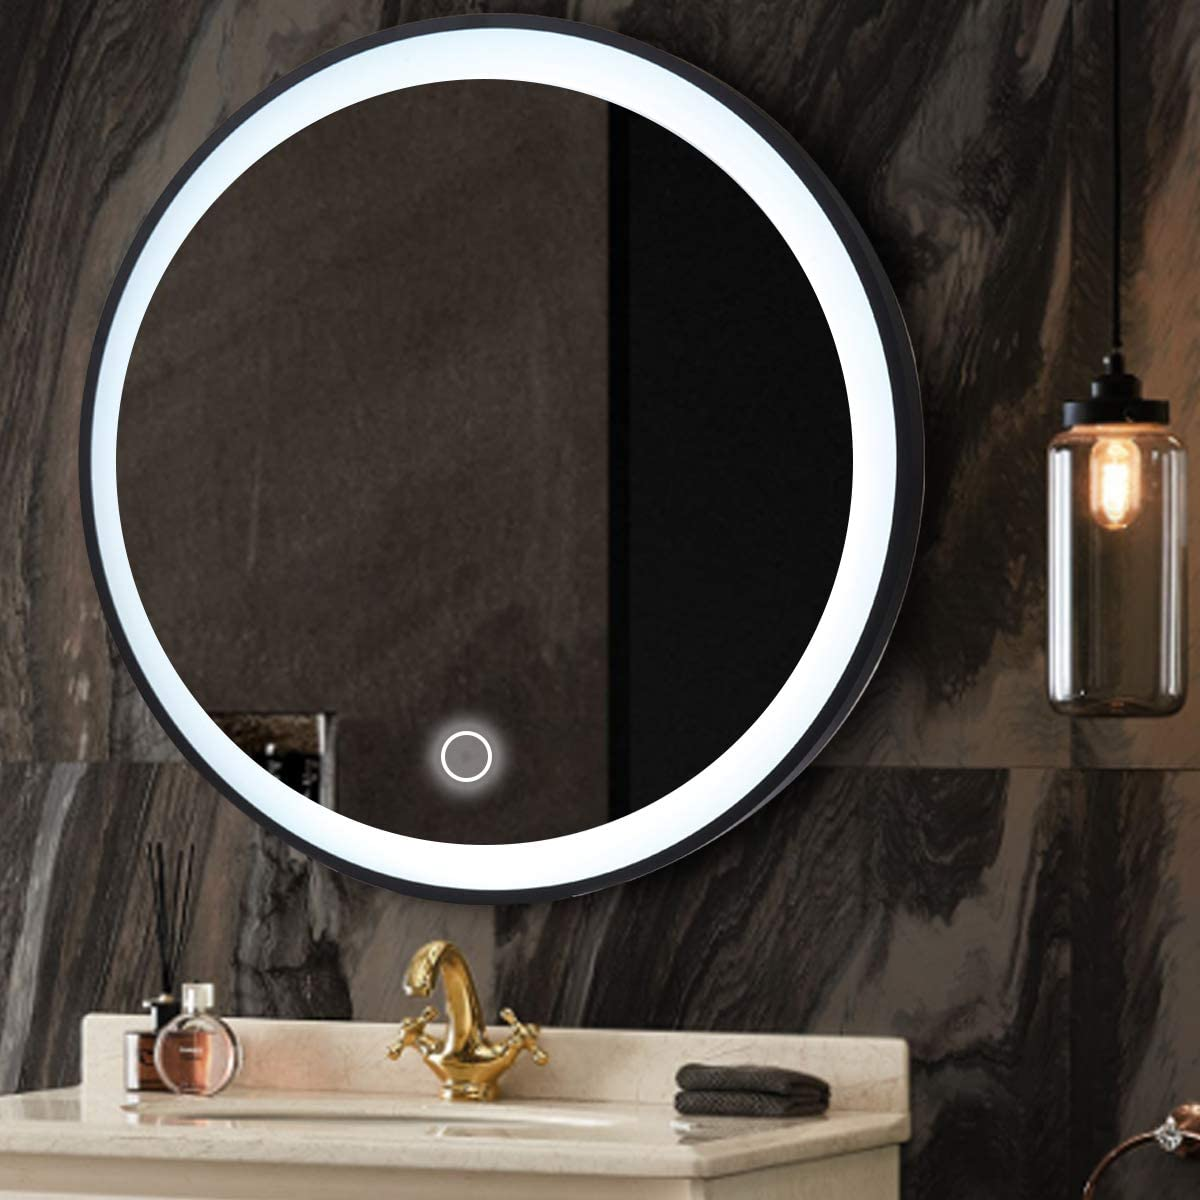 OTTARO 24 Inch Circle Wall Mirror with Light, Round Led Vanity Mirror Black Metal Frame for Entryways, Washrooms, Living Room and More